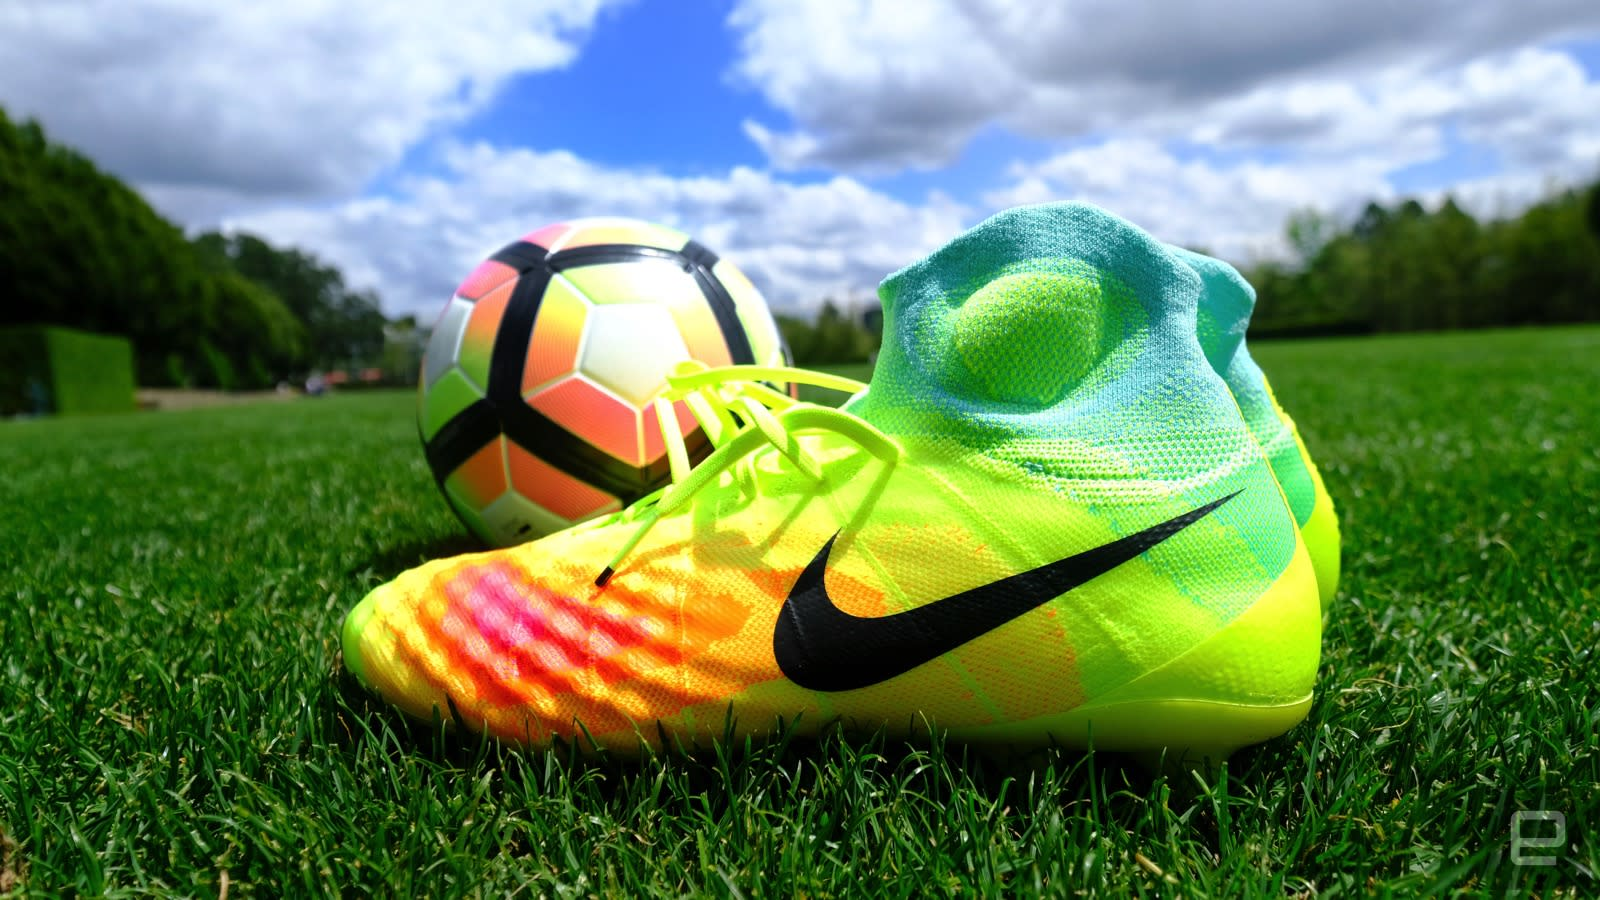 Nike's latest soccer cleat is its most